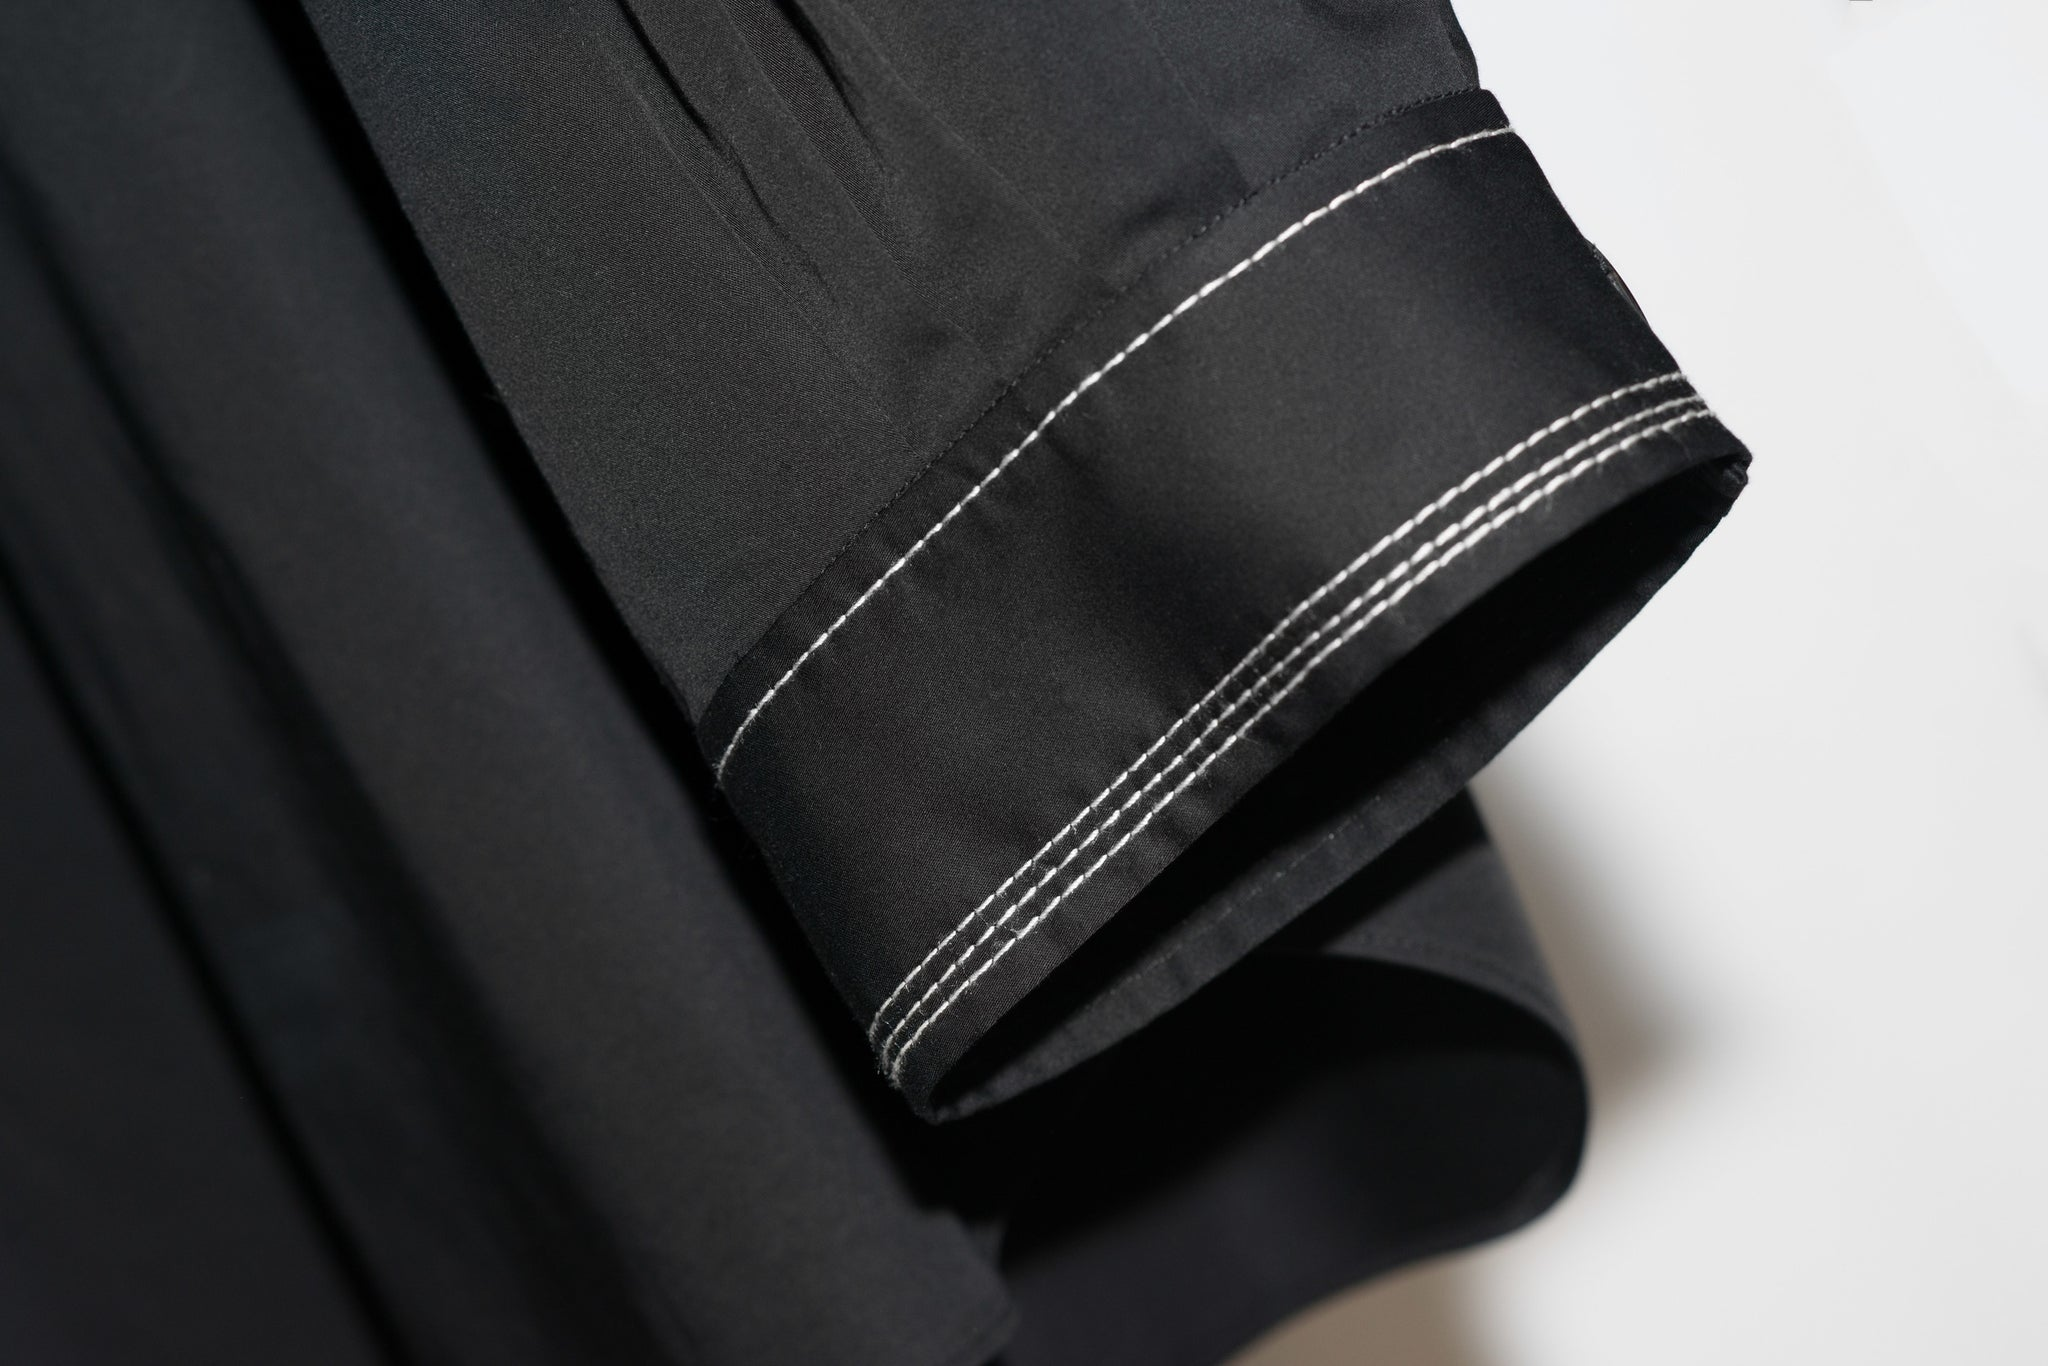 balloon-sleeve black top with white-stitched cuffs